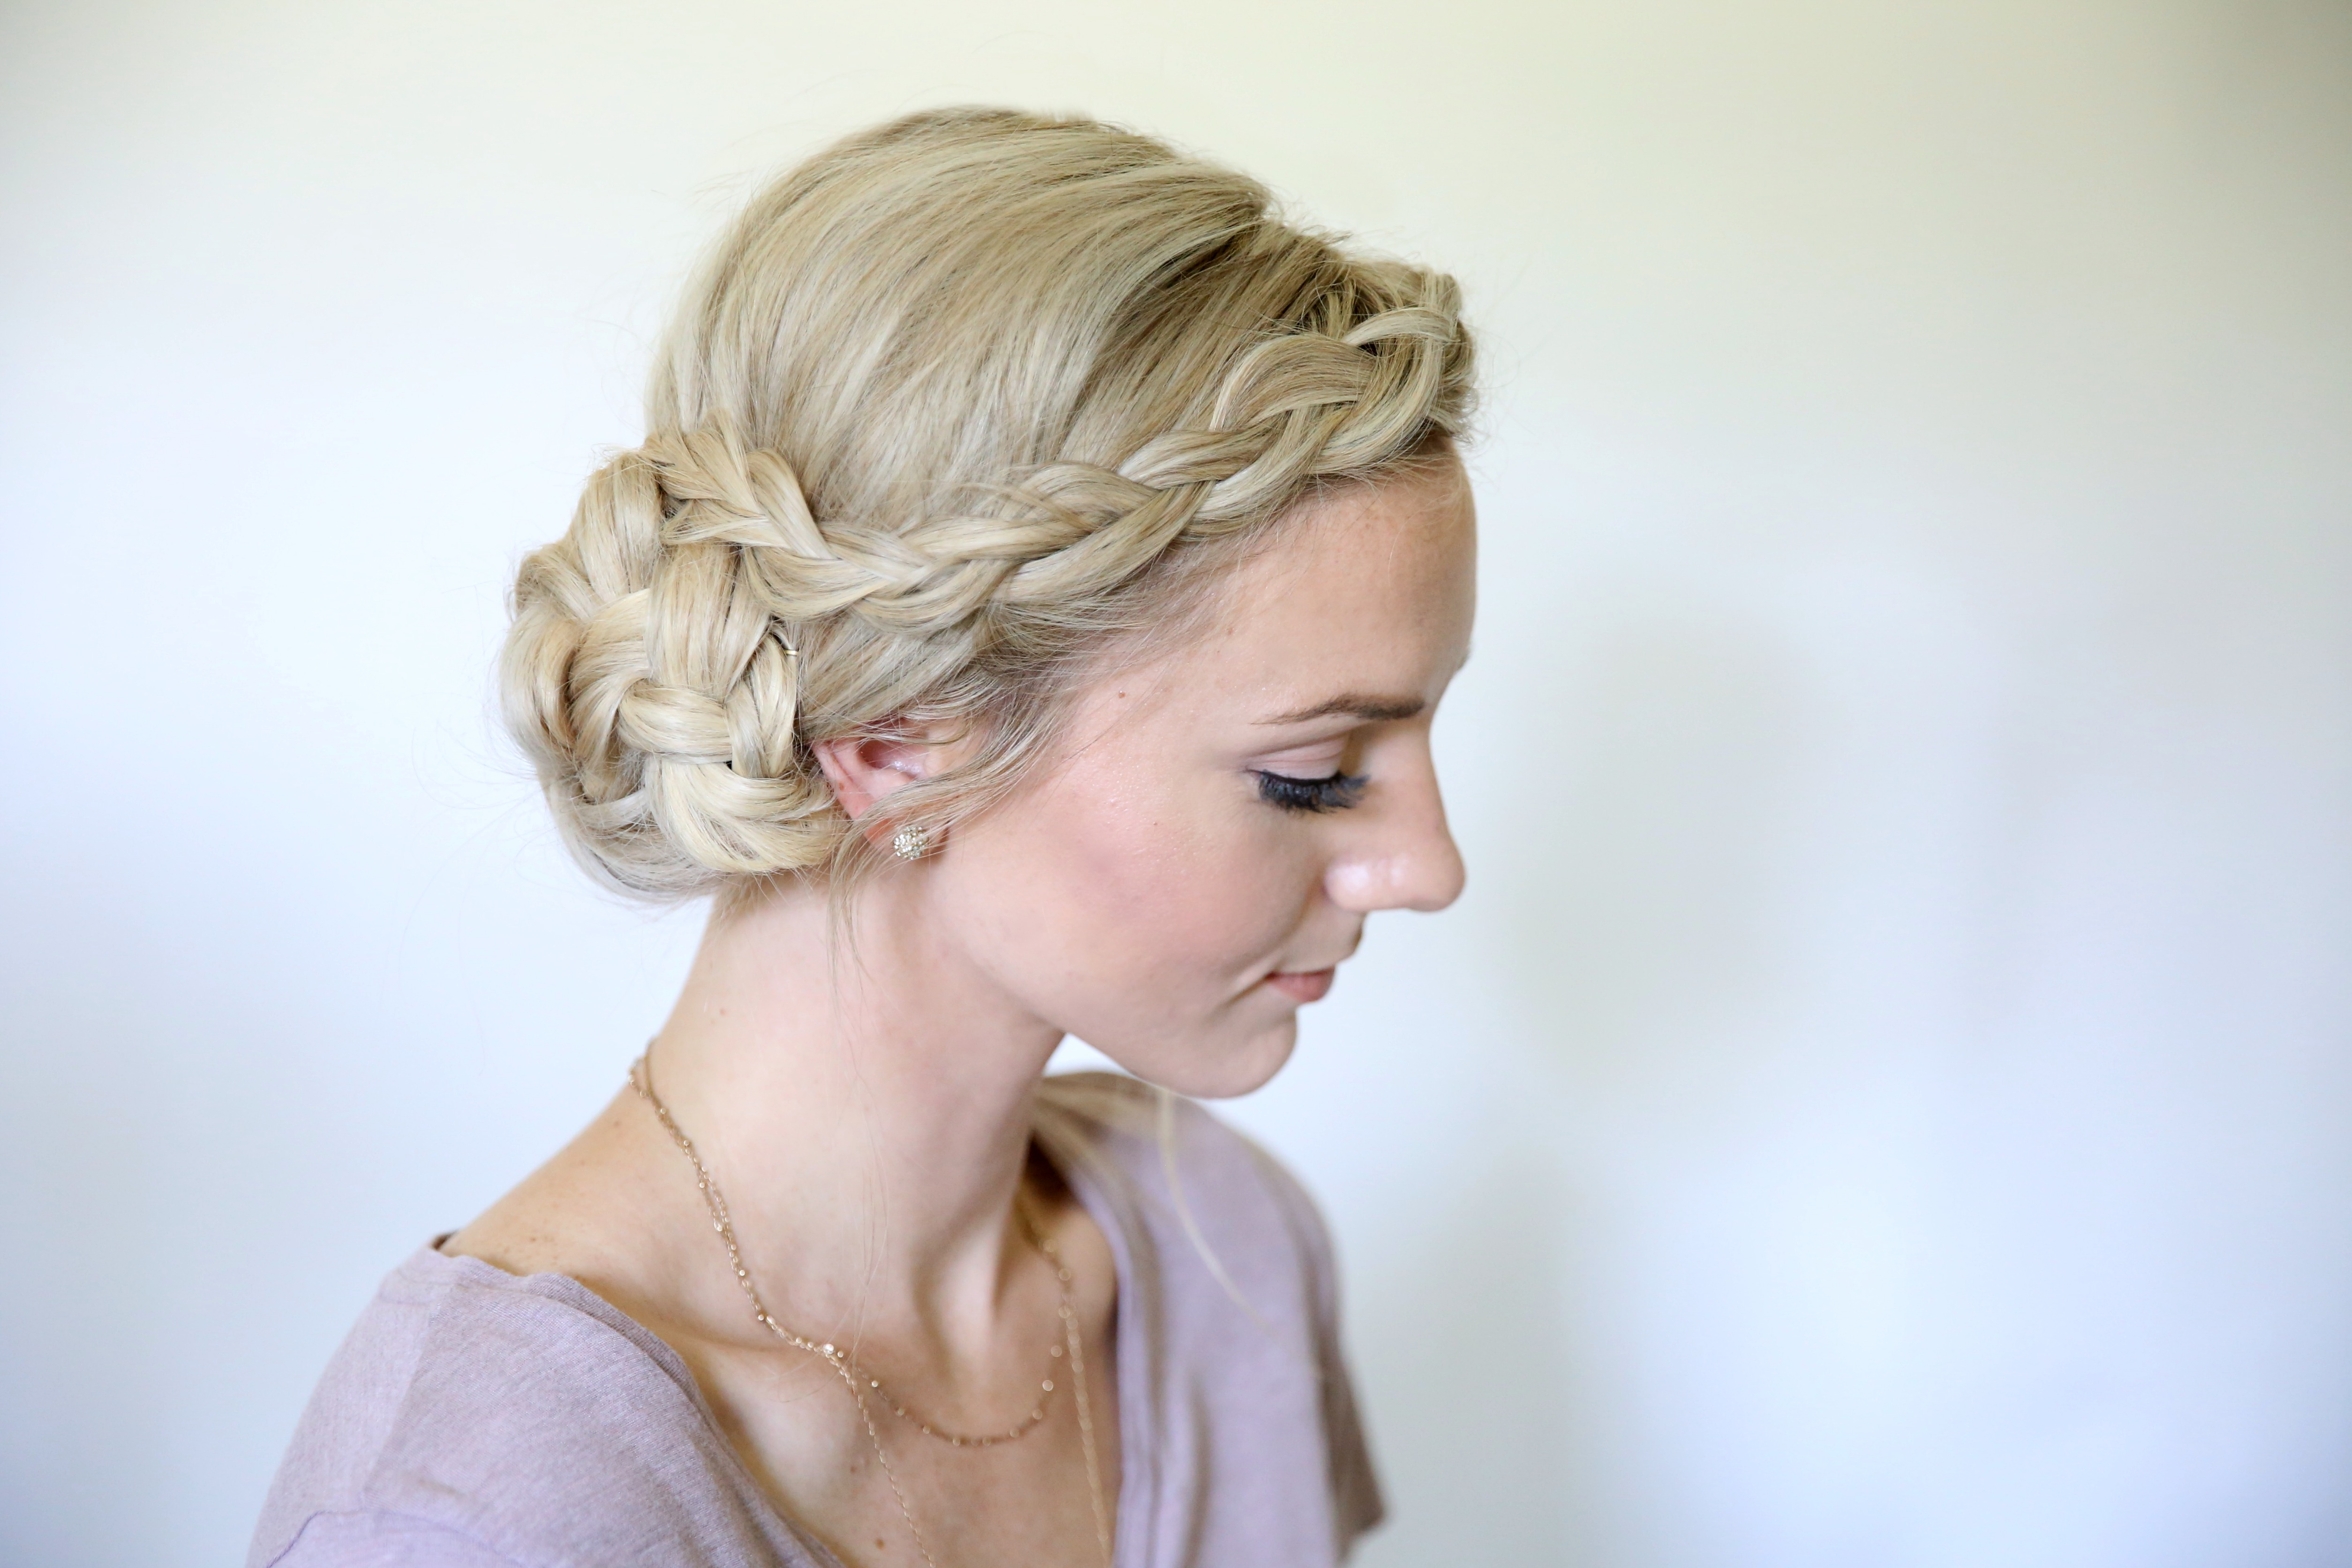 Hairstyles Braids On The Side: Cute Girls Hairstyles